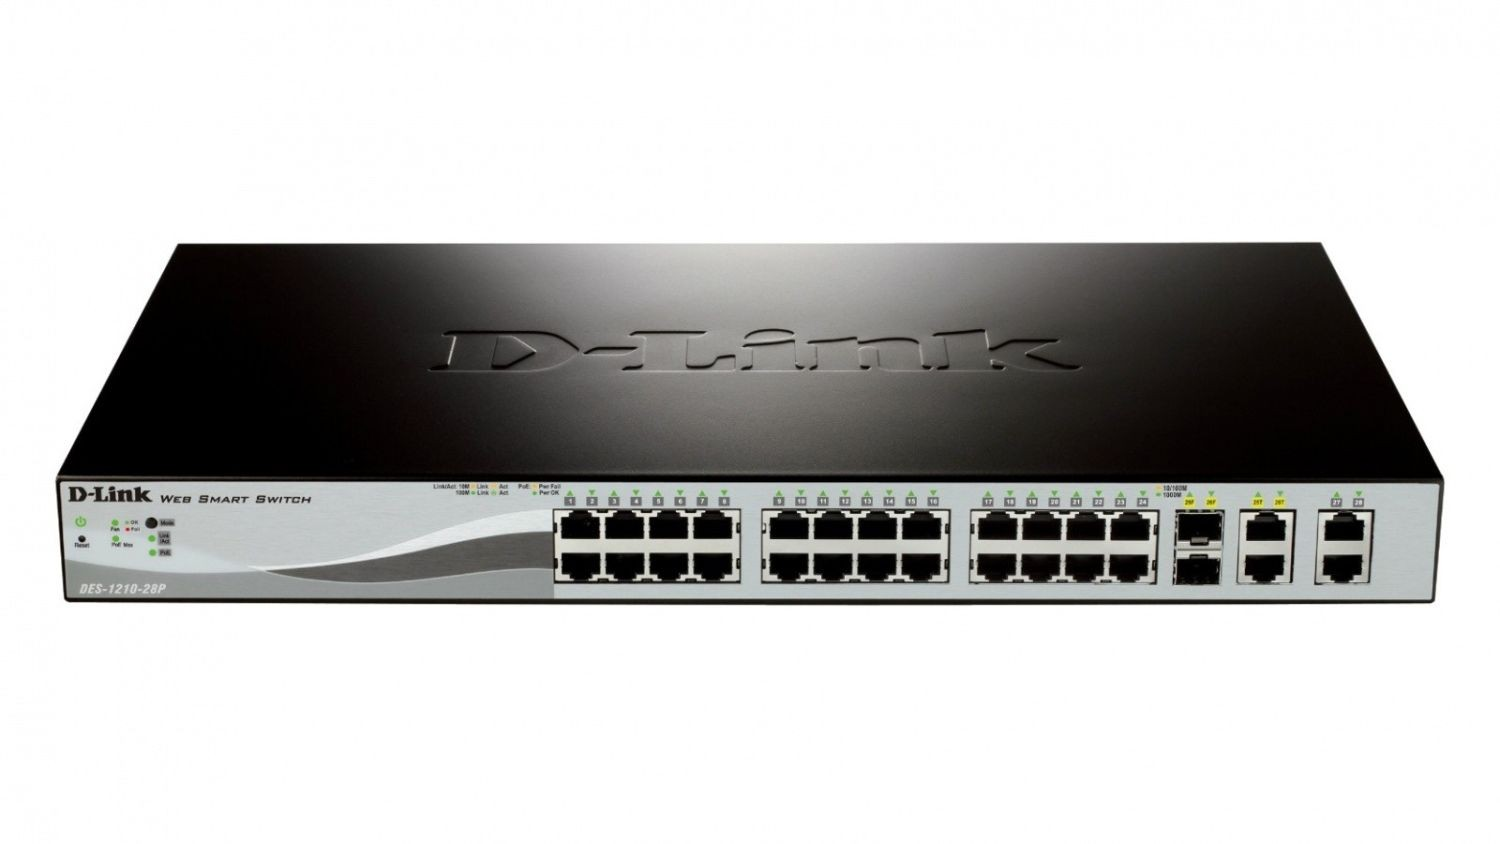 D-Link 24-port Fast Ethernet PoE/PoE+ Smart Switch